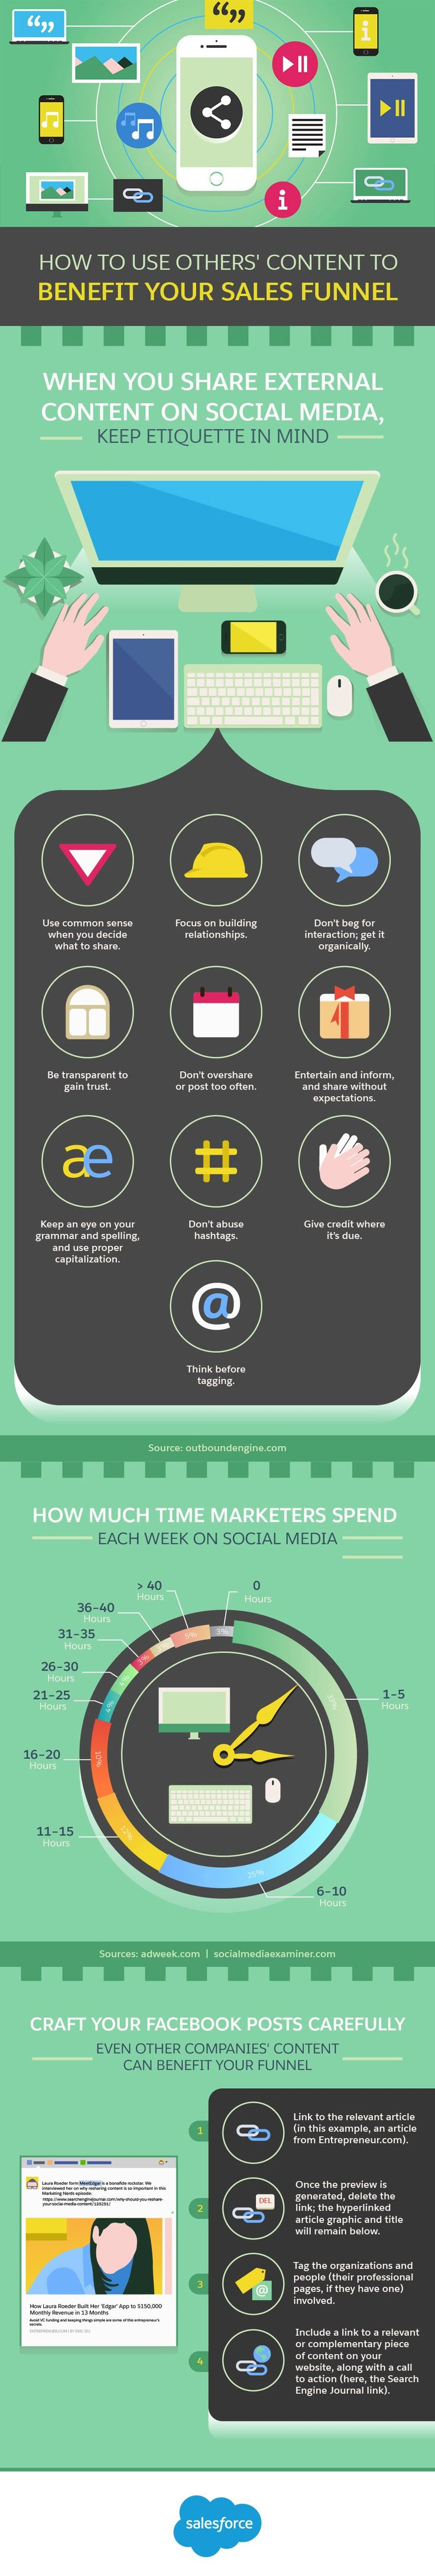 How to Use Others' Content to Benefit Your Sales Funnel - #infographic